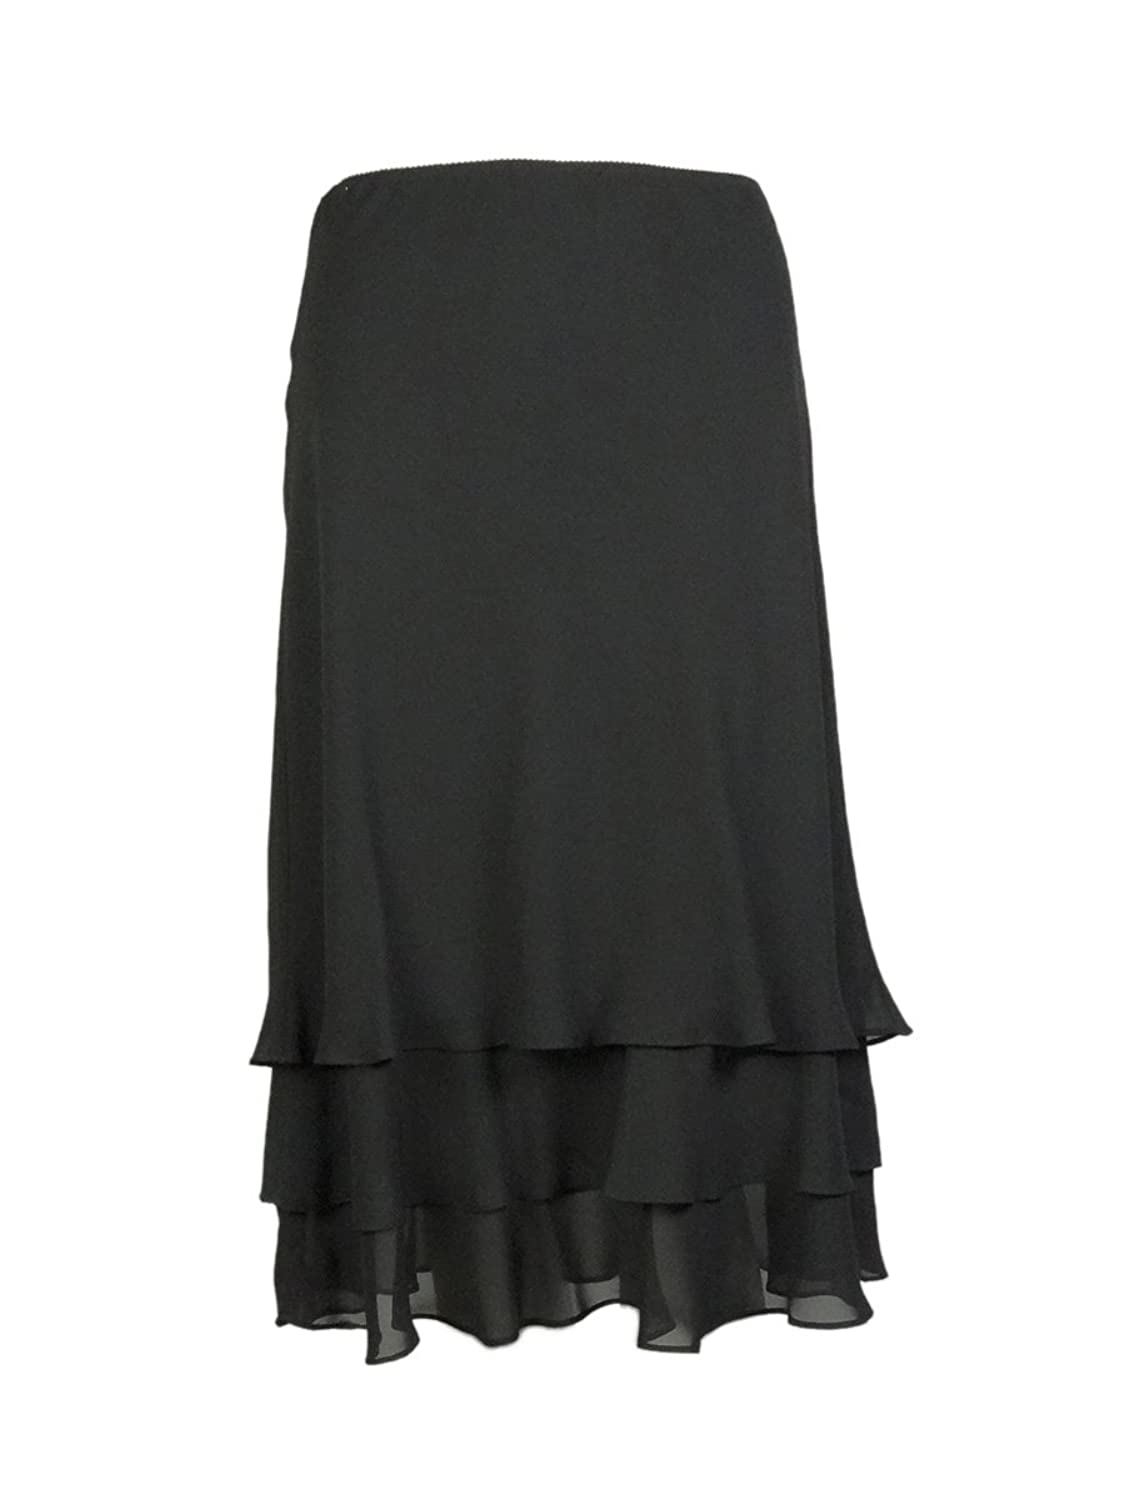 1920s Skirt History  Tiered Chiffon Skirt $69.00 AT vintagedancer.com